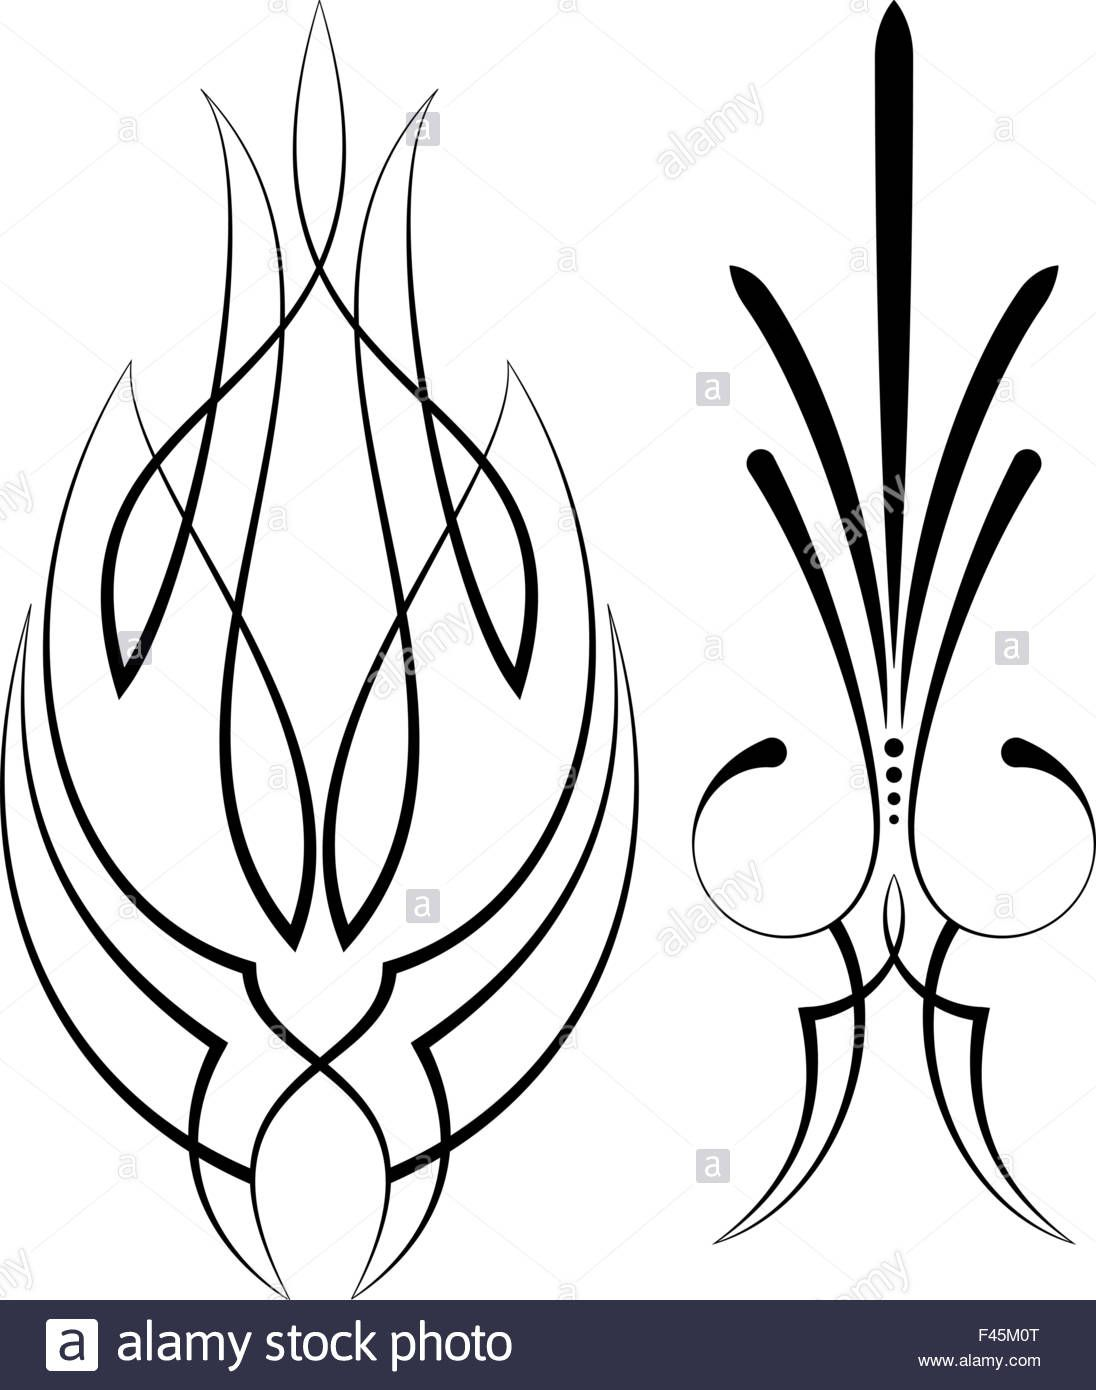 1096x1390 Free Vector Graphics Pinstripe Art Along With Vehicle Graphics